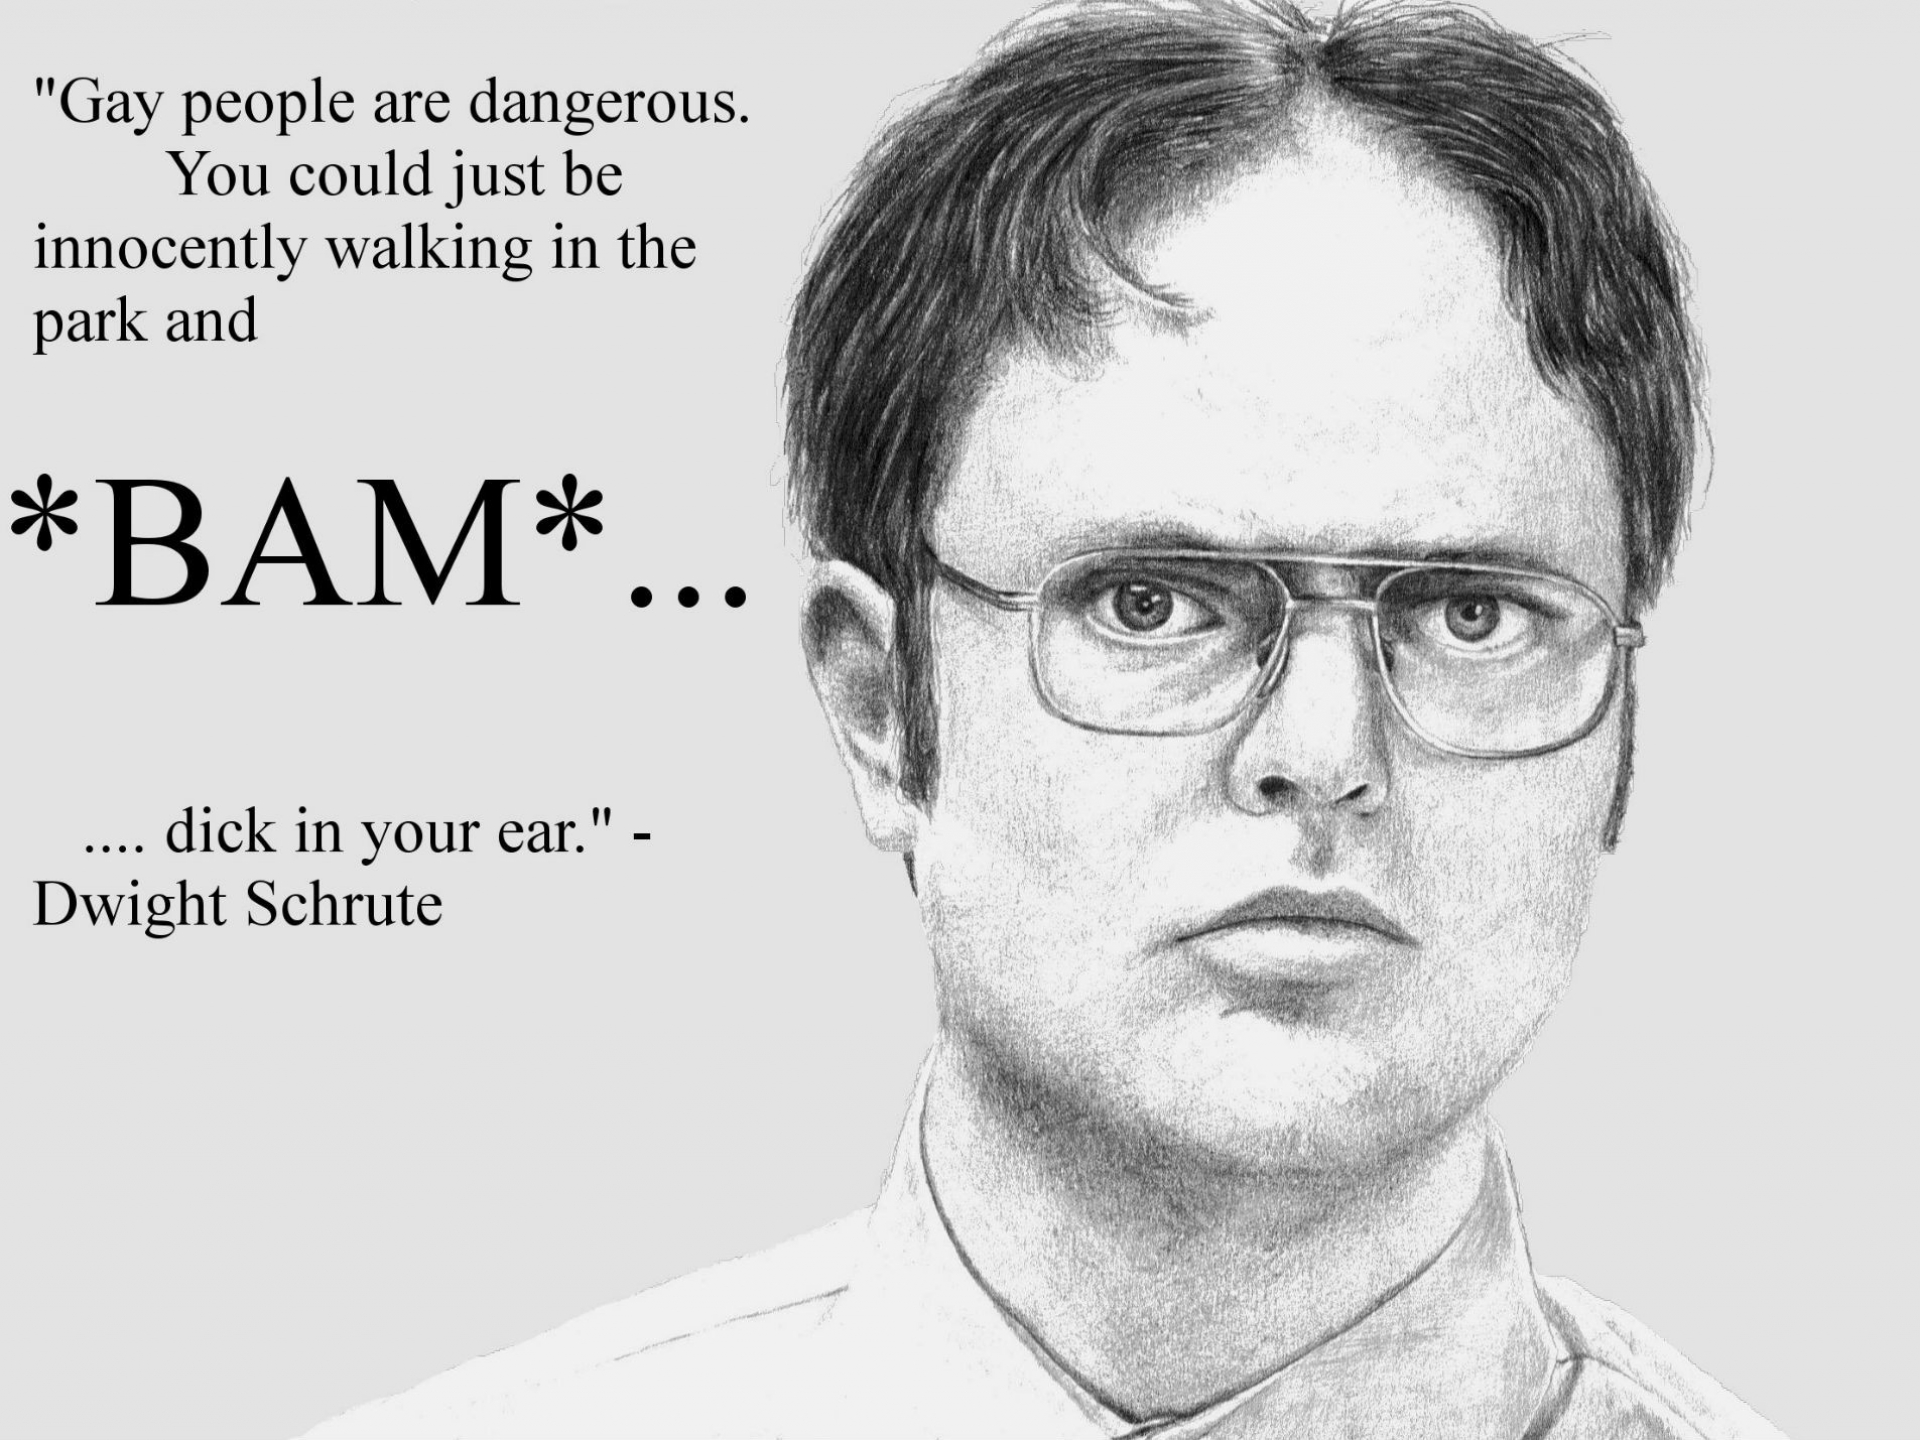 schrute drawings Knowledge Quotes humor sadic gay wallpaper background 1920x1440